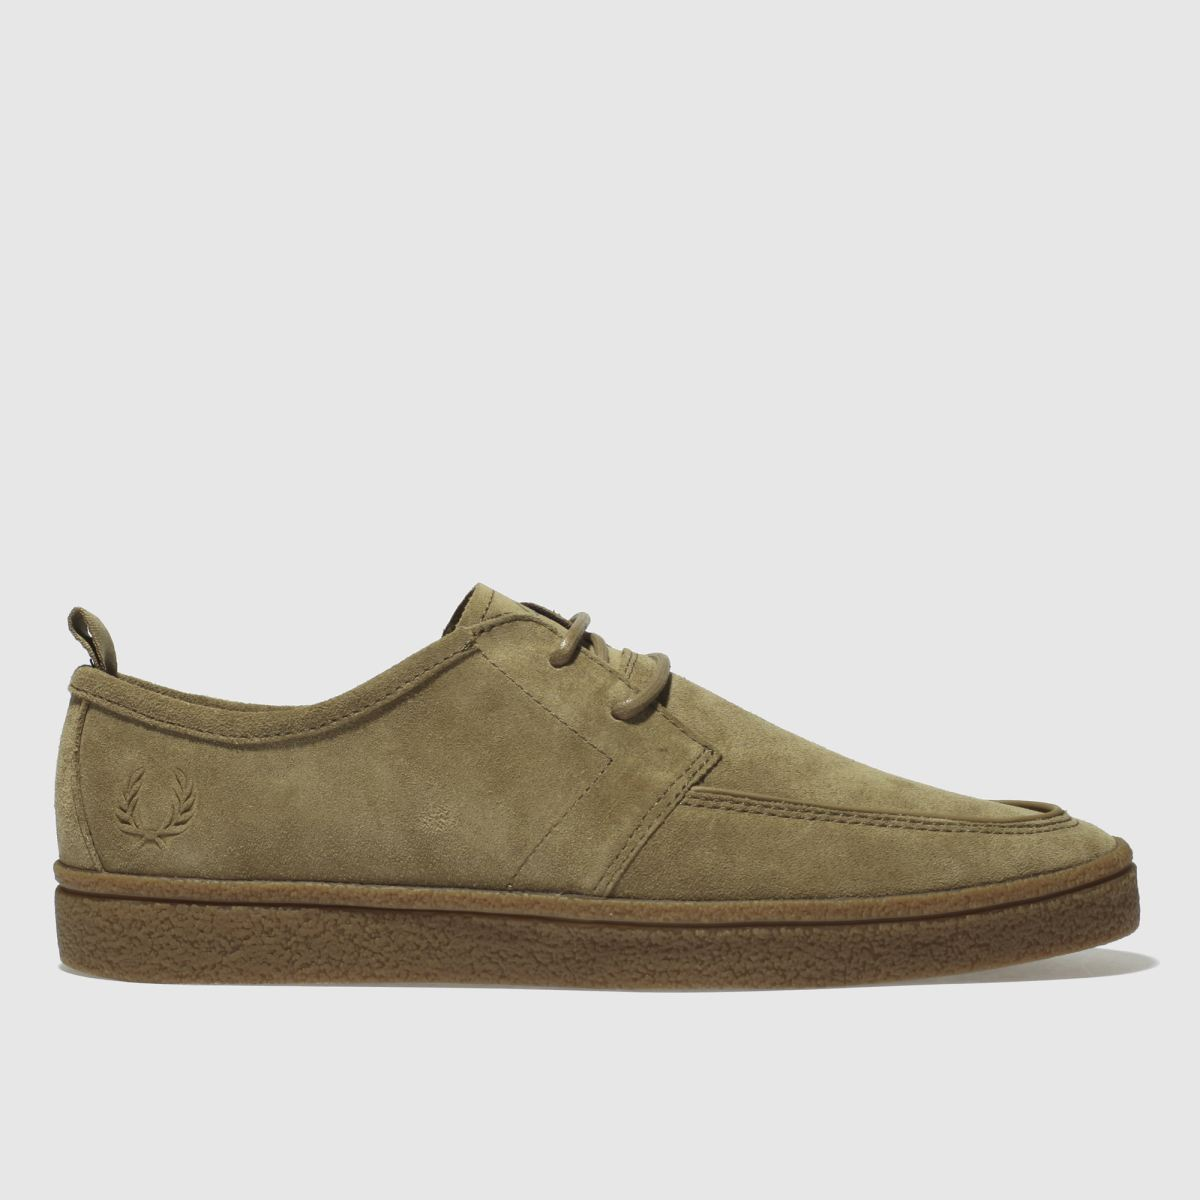 Fred Perry Tan Shields Suede Crepe Shoes